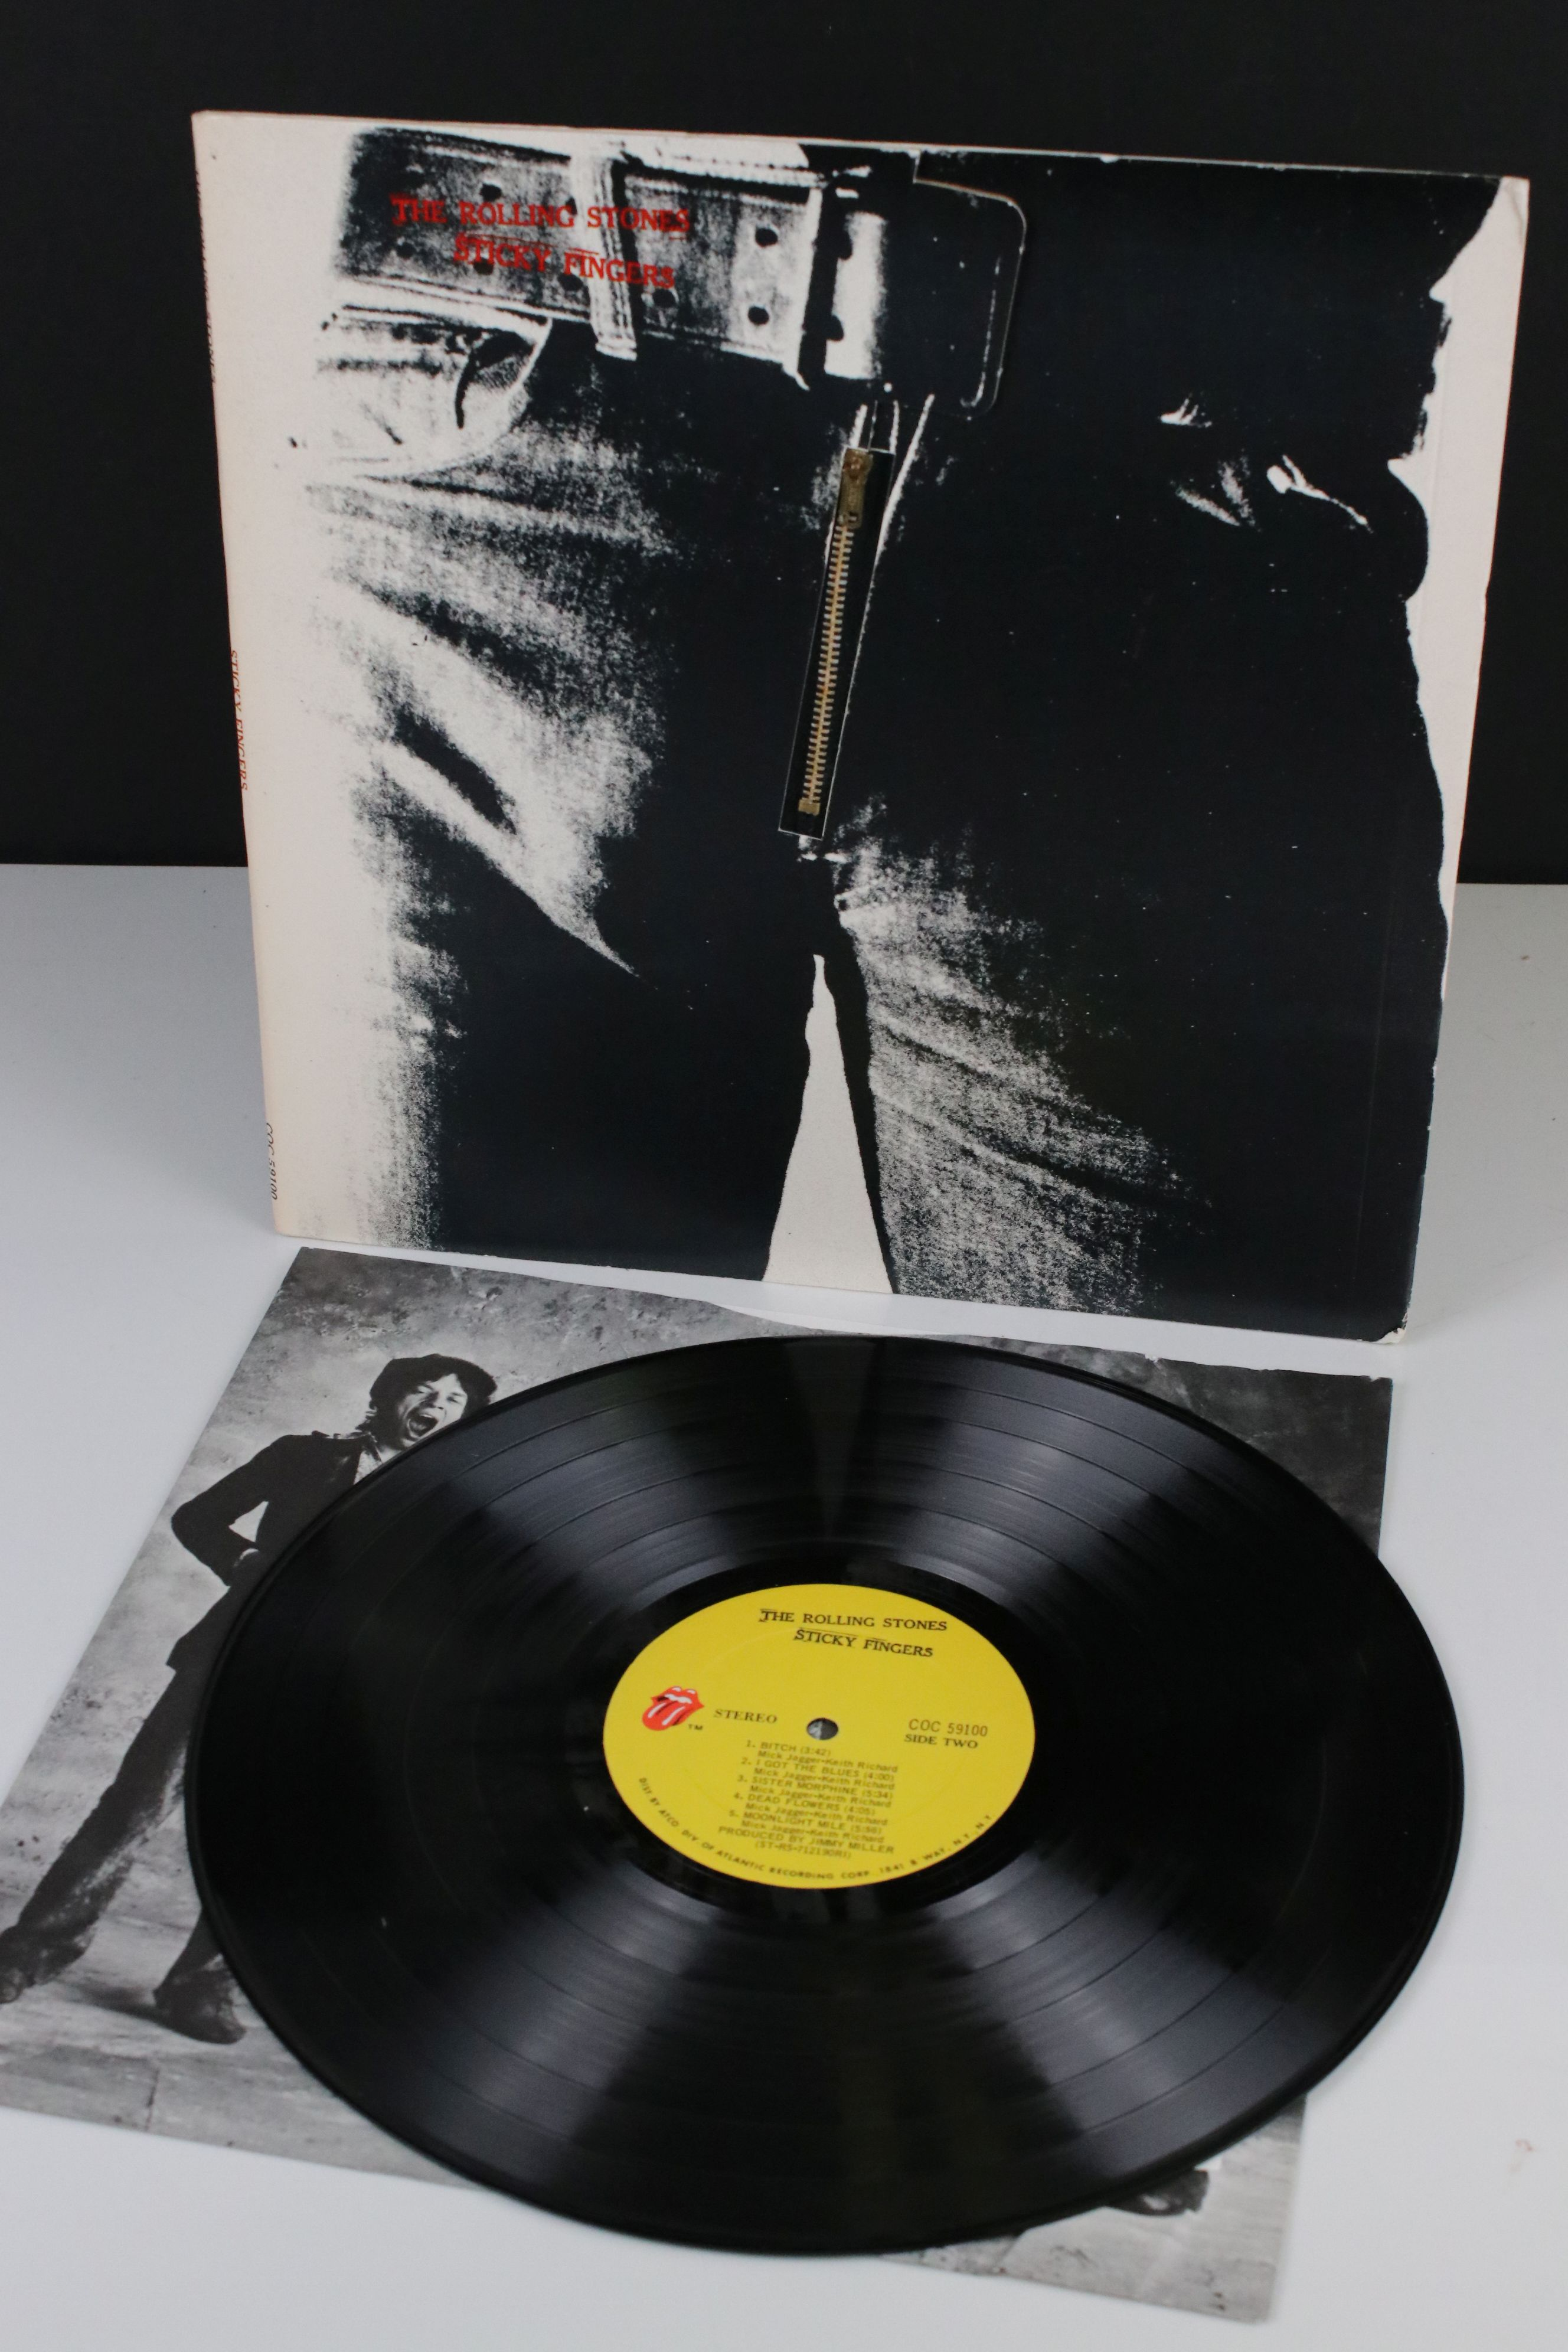 Vinyl - The Rolling Stones Sticky Fingers (COC 59100) Stereo, ATCO US pressing, inner sleeve has